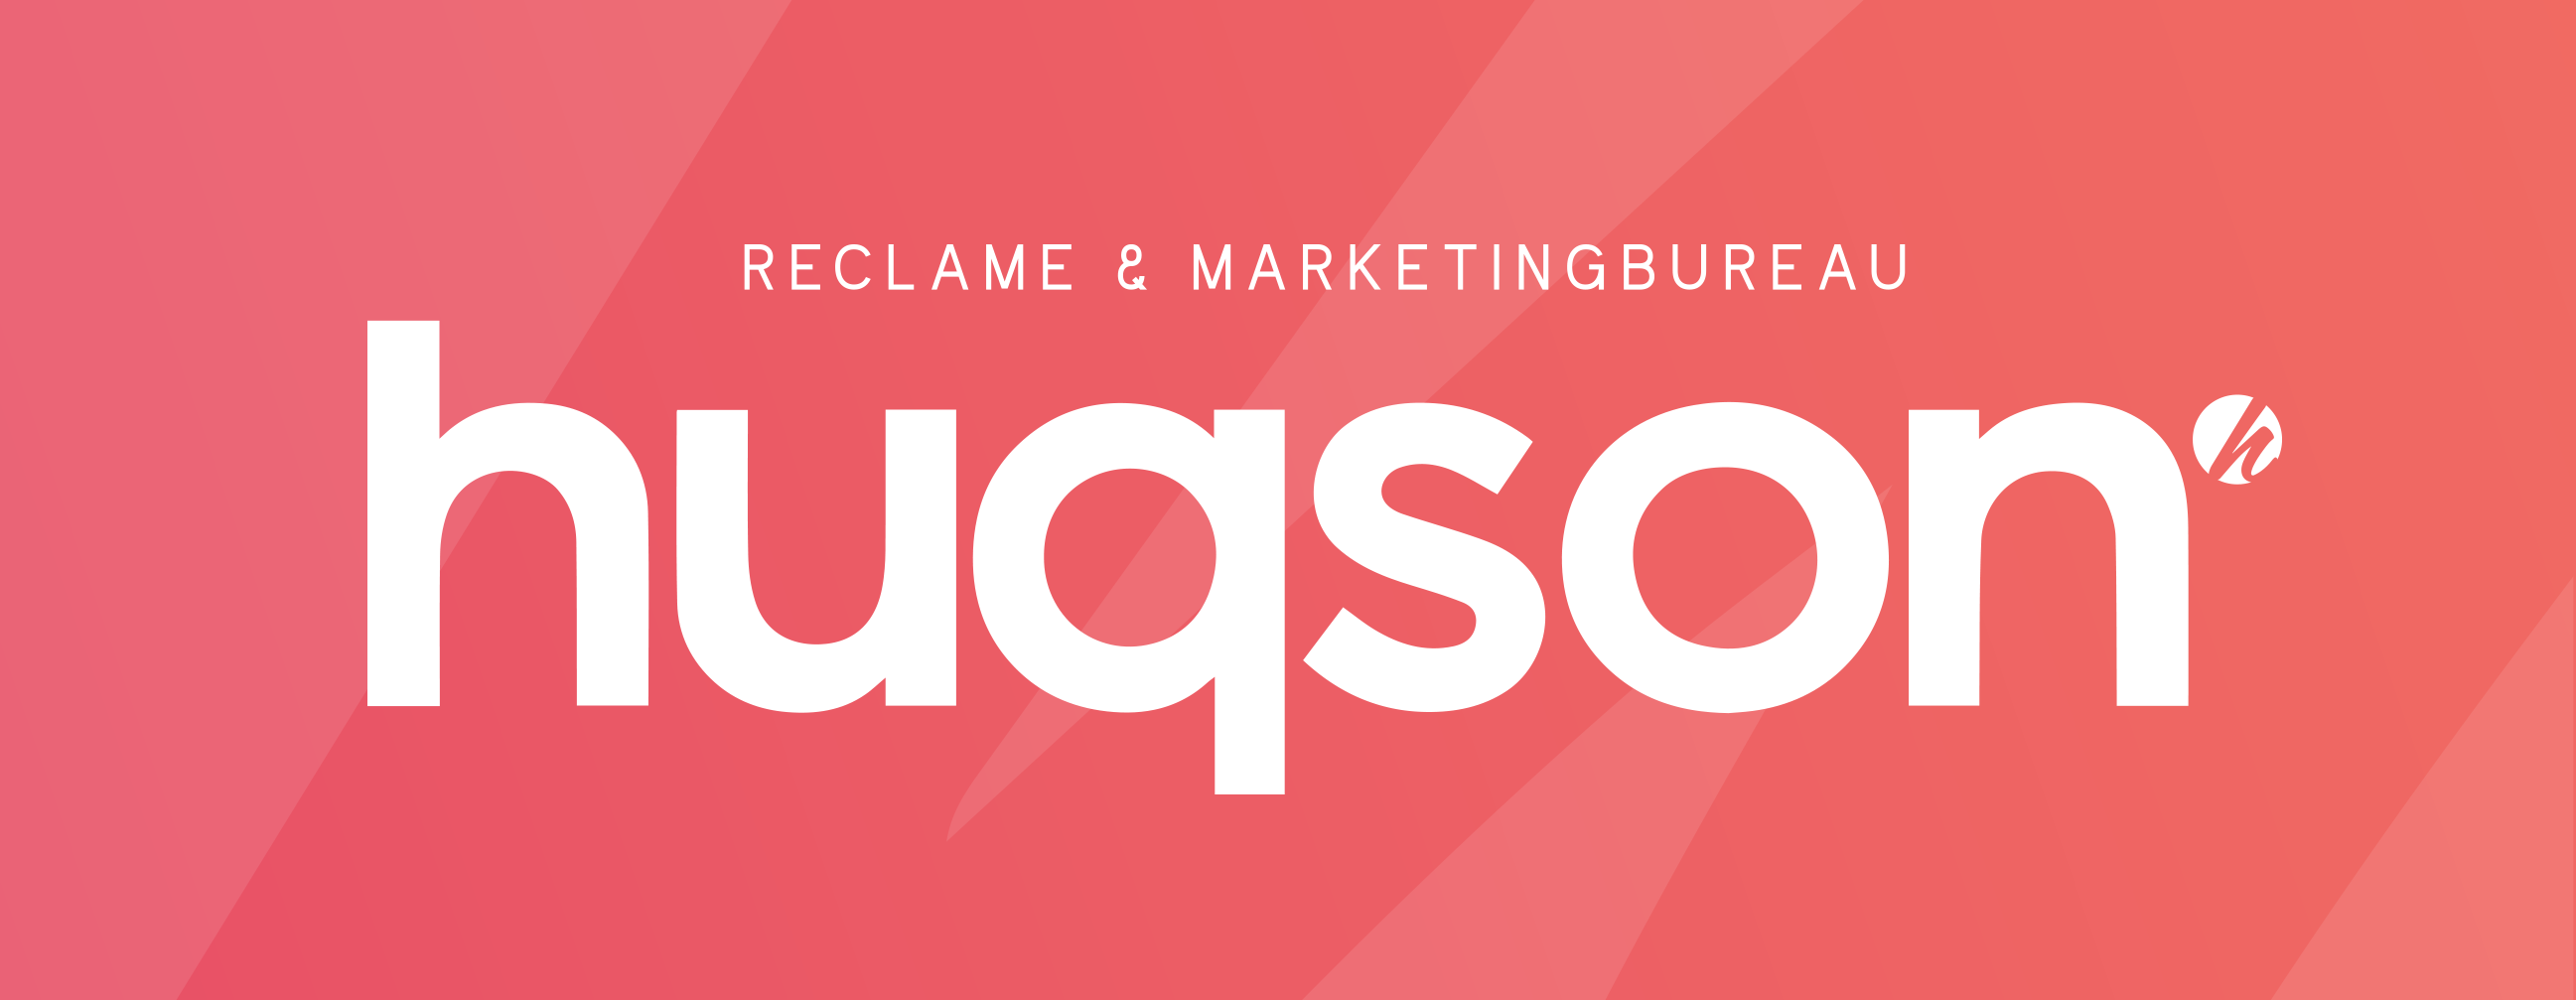 Reclame & Marketingbureau Huqson